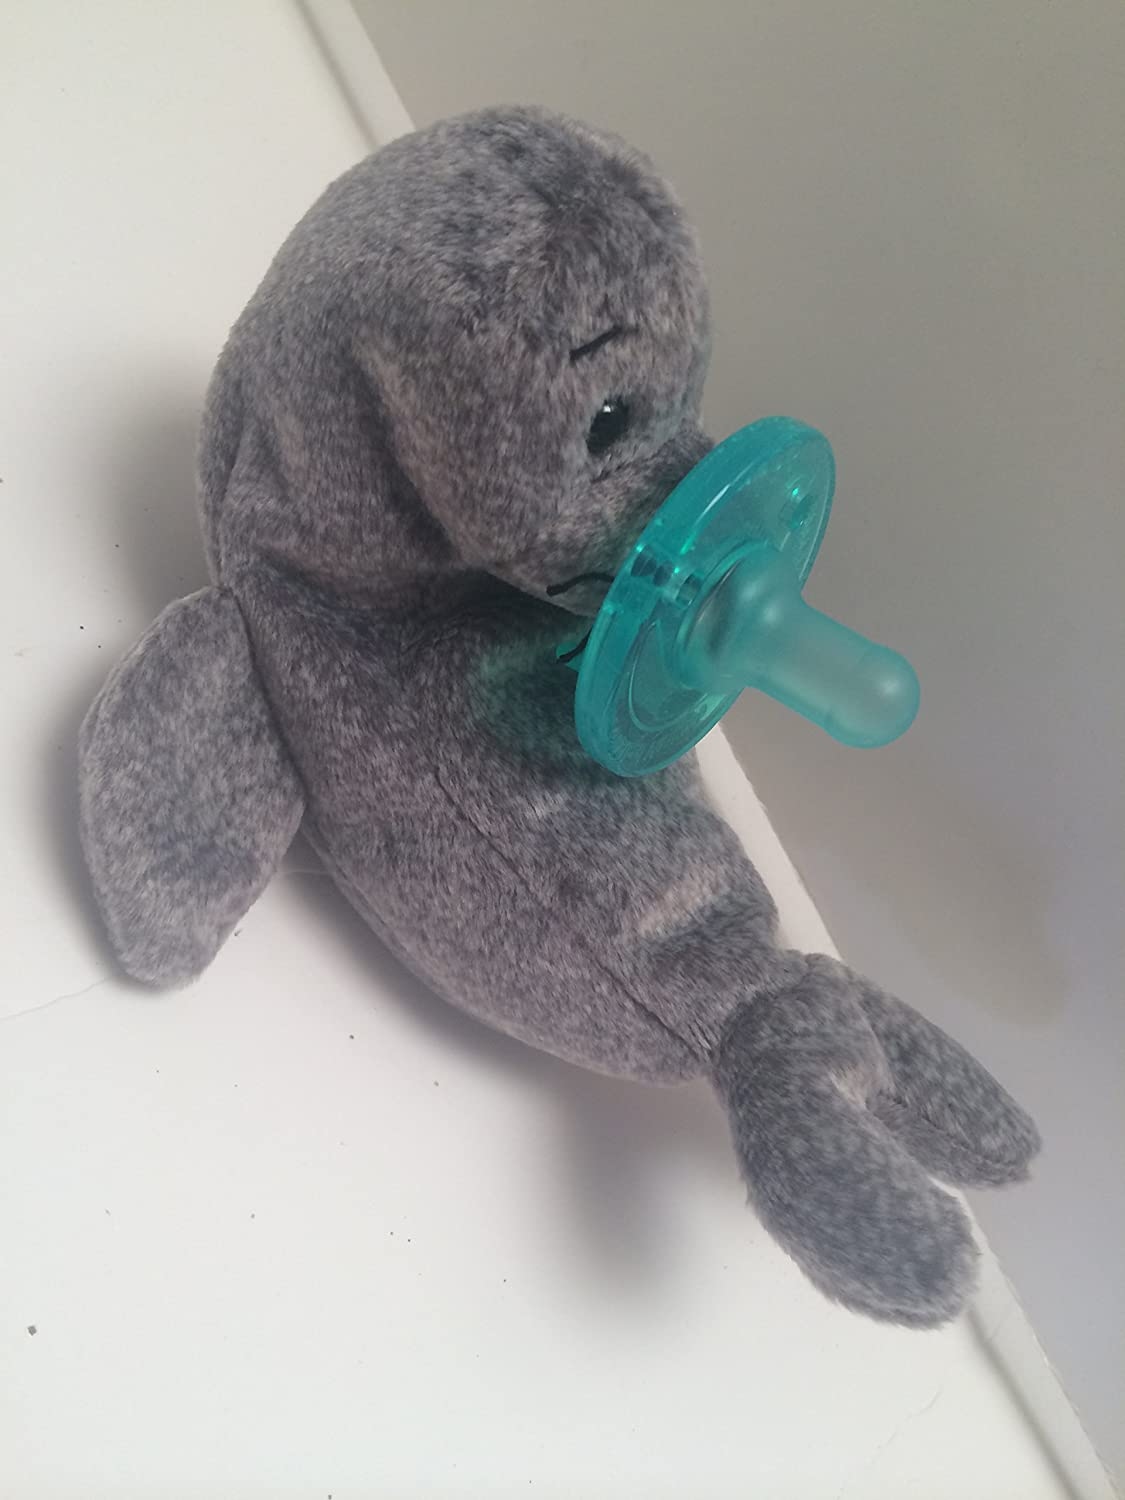 Amazon.com: Peluche Animal paciifer Buddy (Sello): Baby